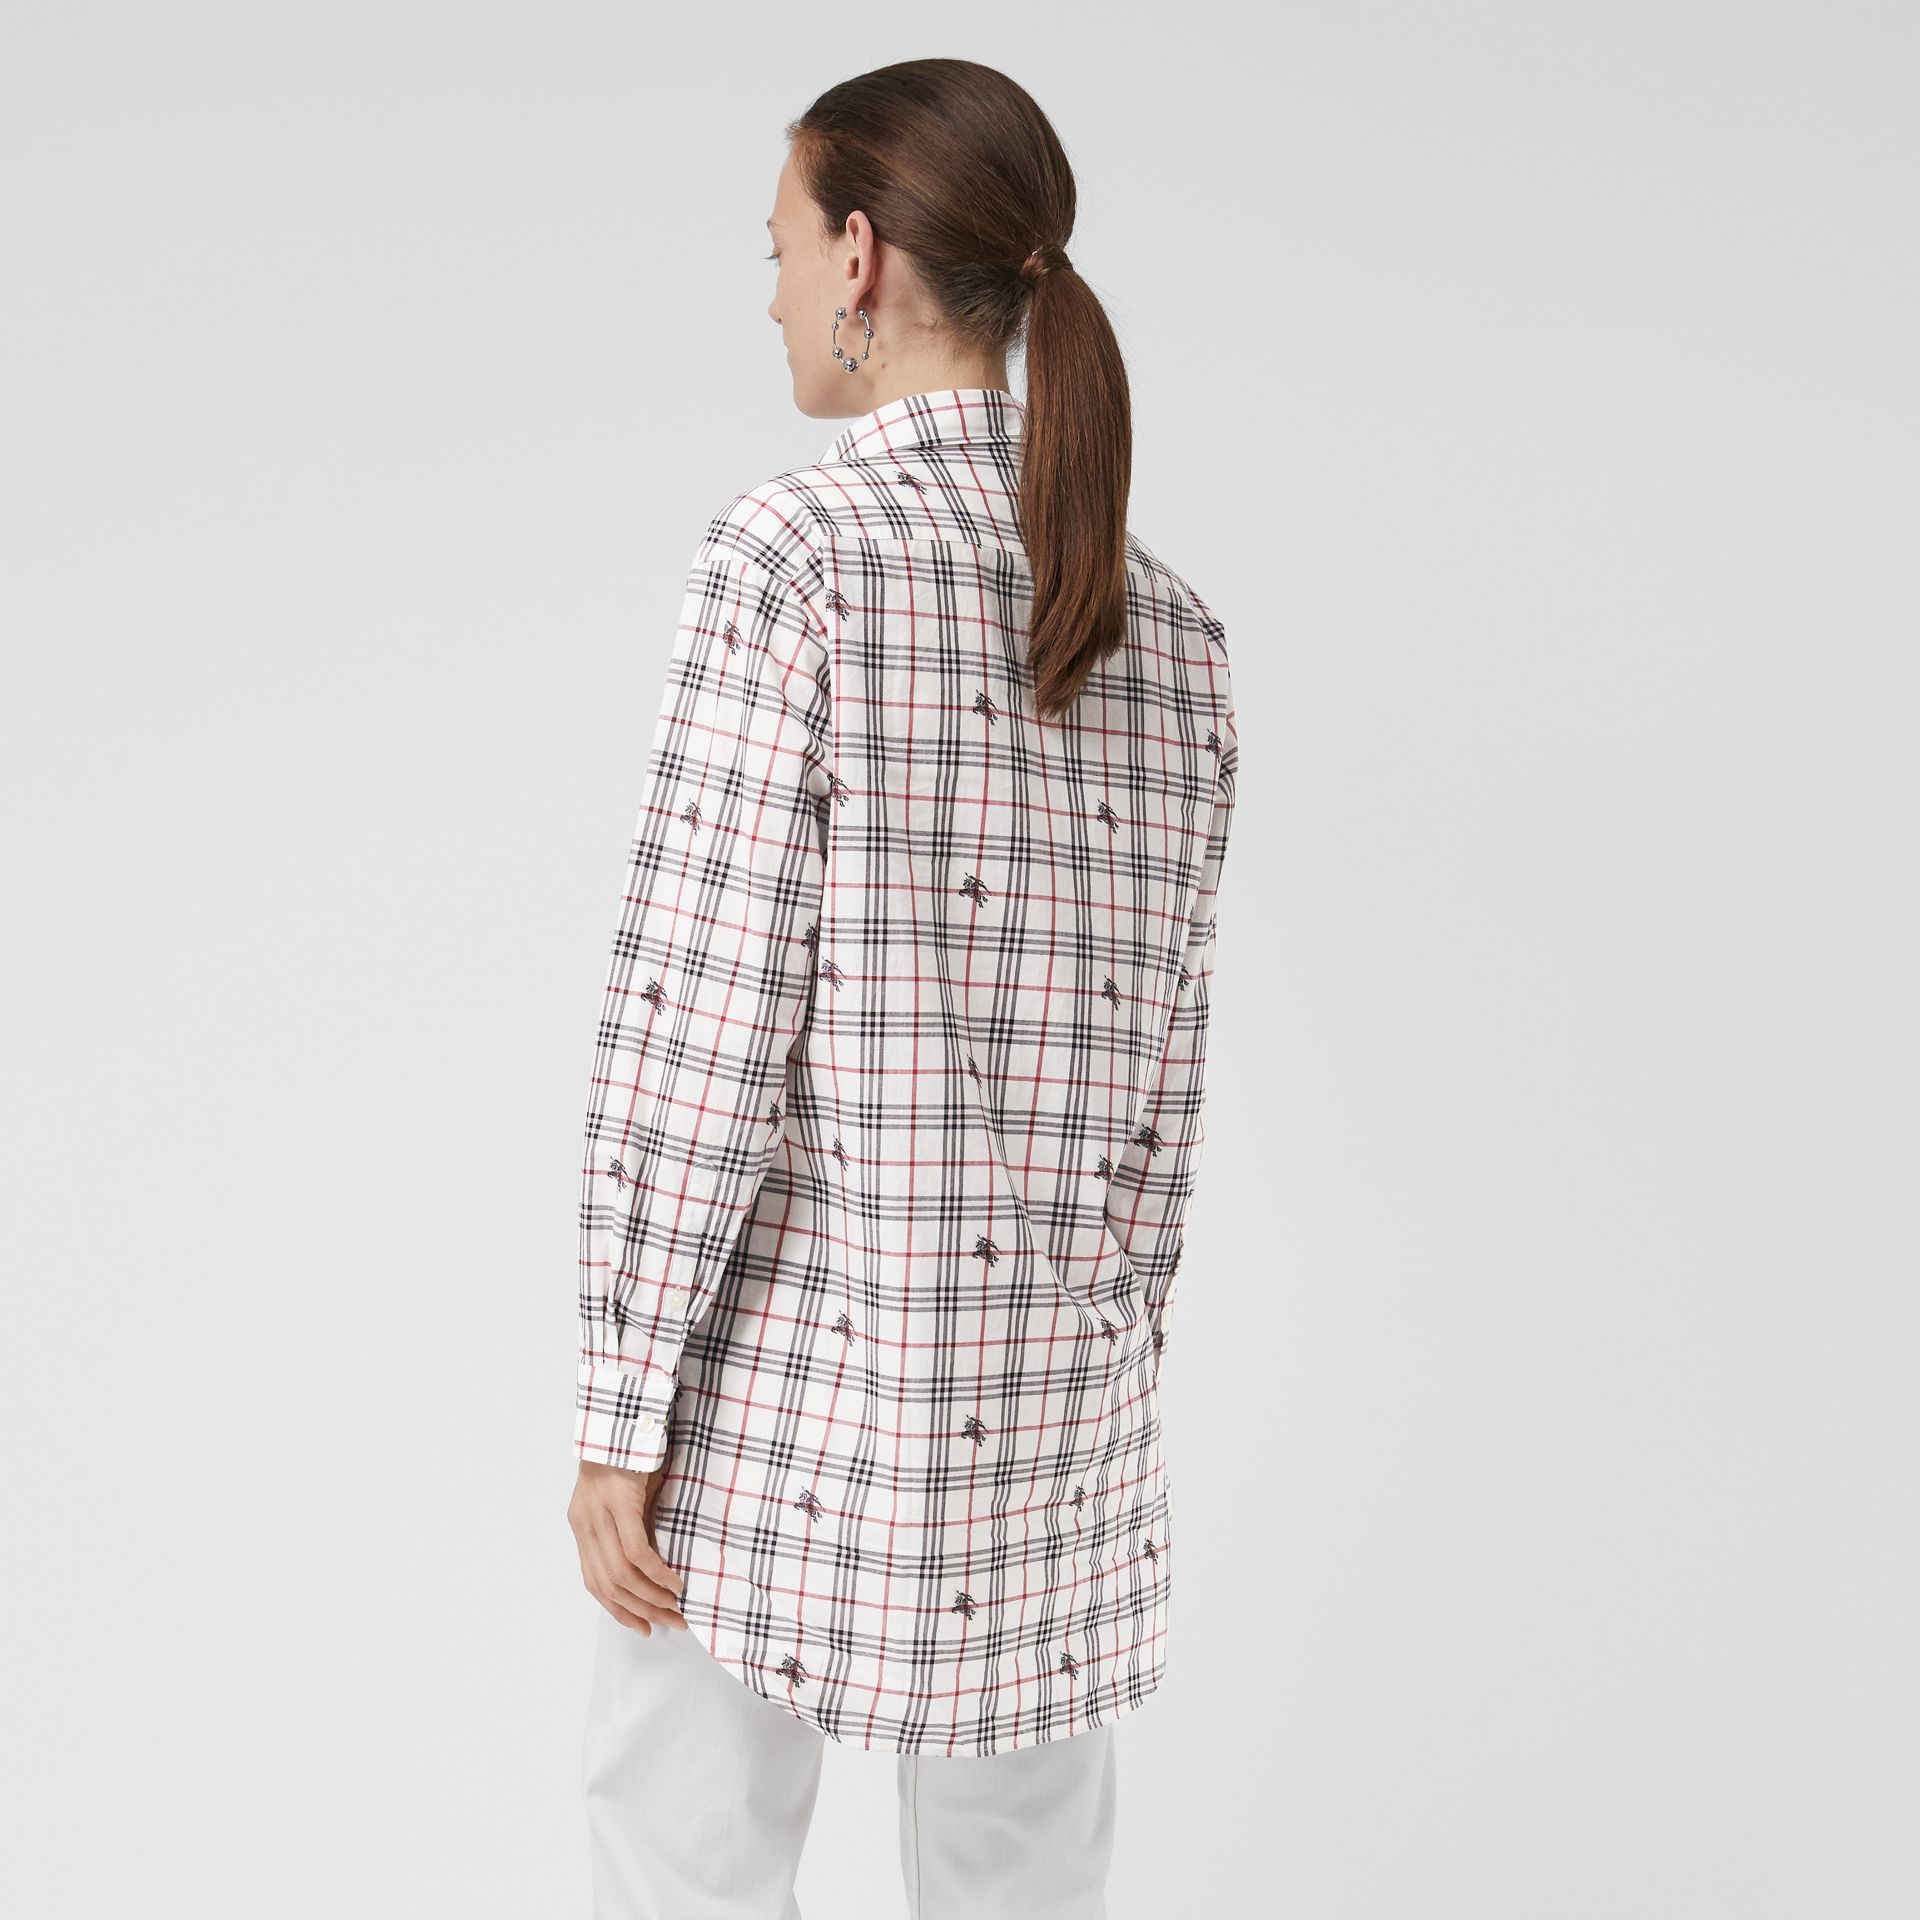 Equestrian Knight Check Cotton Shirt in Natural White - Women | Burberry United States - gallery image 2